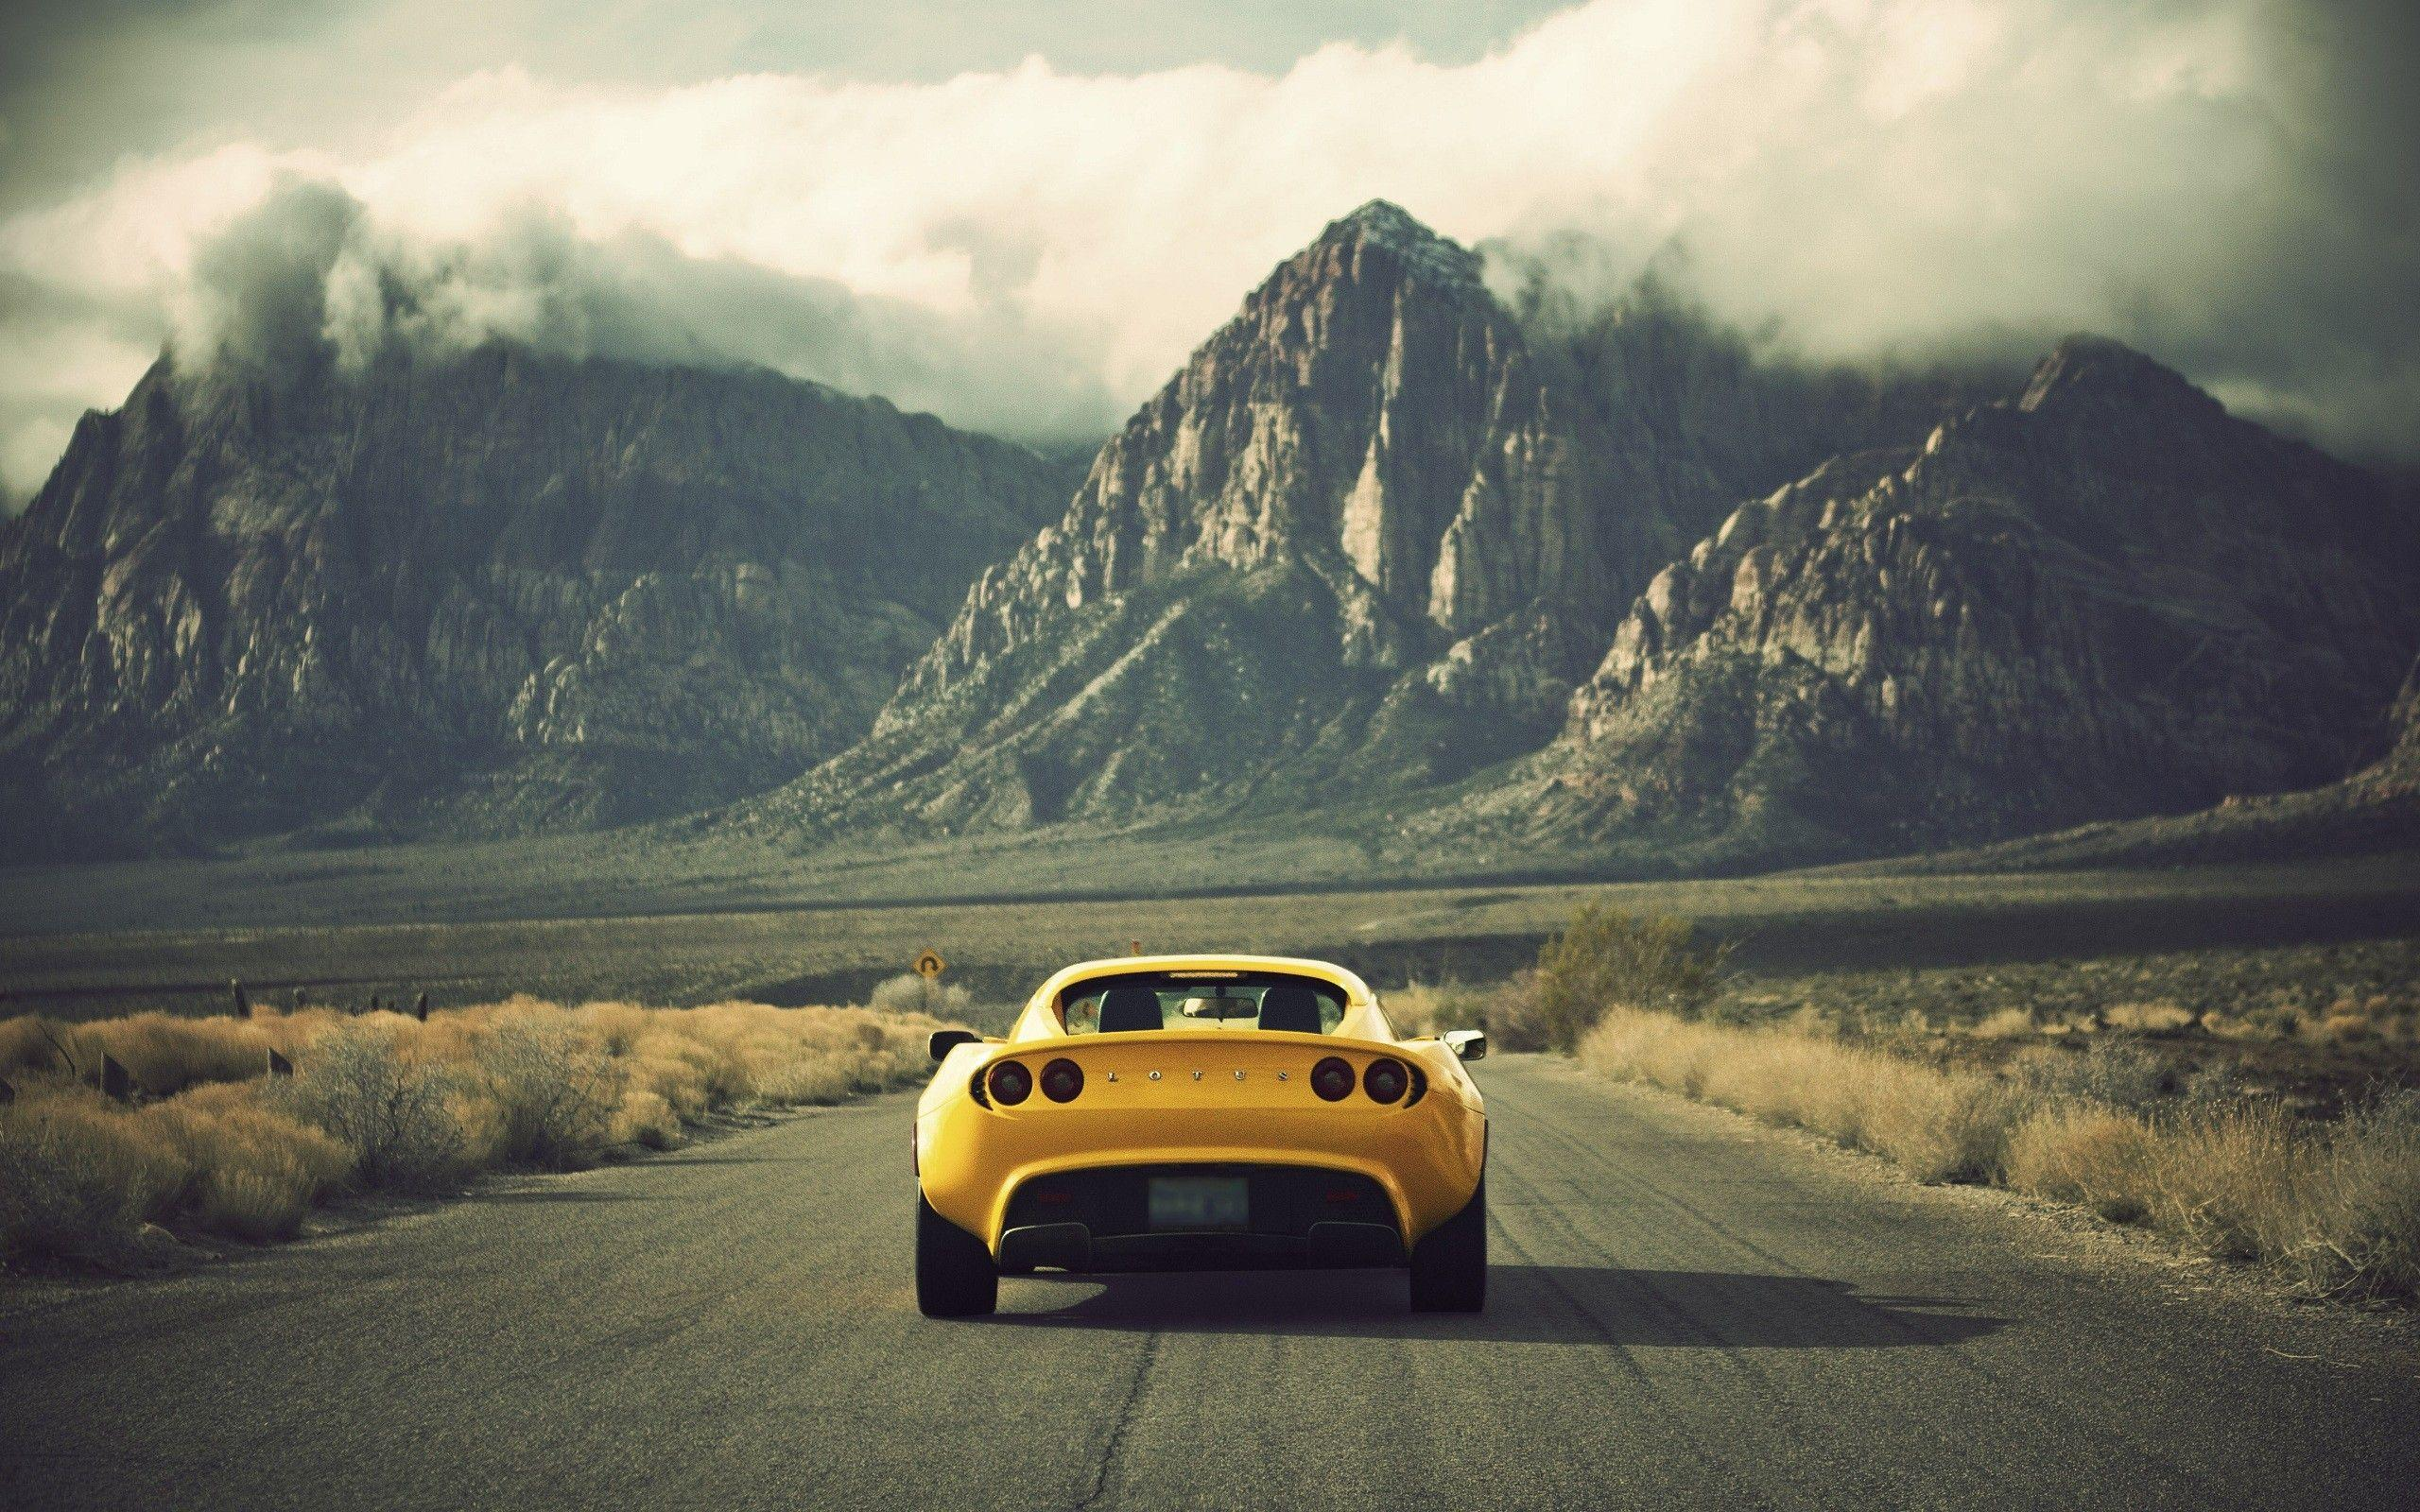 14 Lotus Elise HD Wallpapers | Backgrounds - Wallpaper Abyss